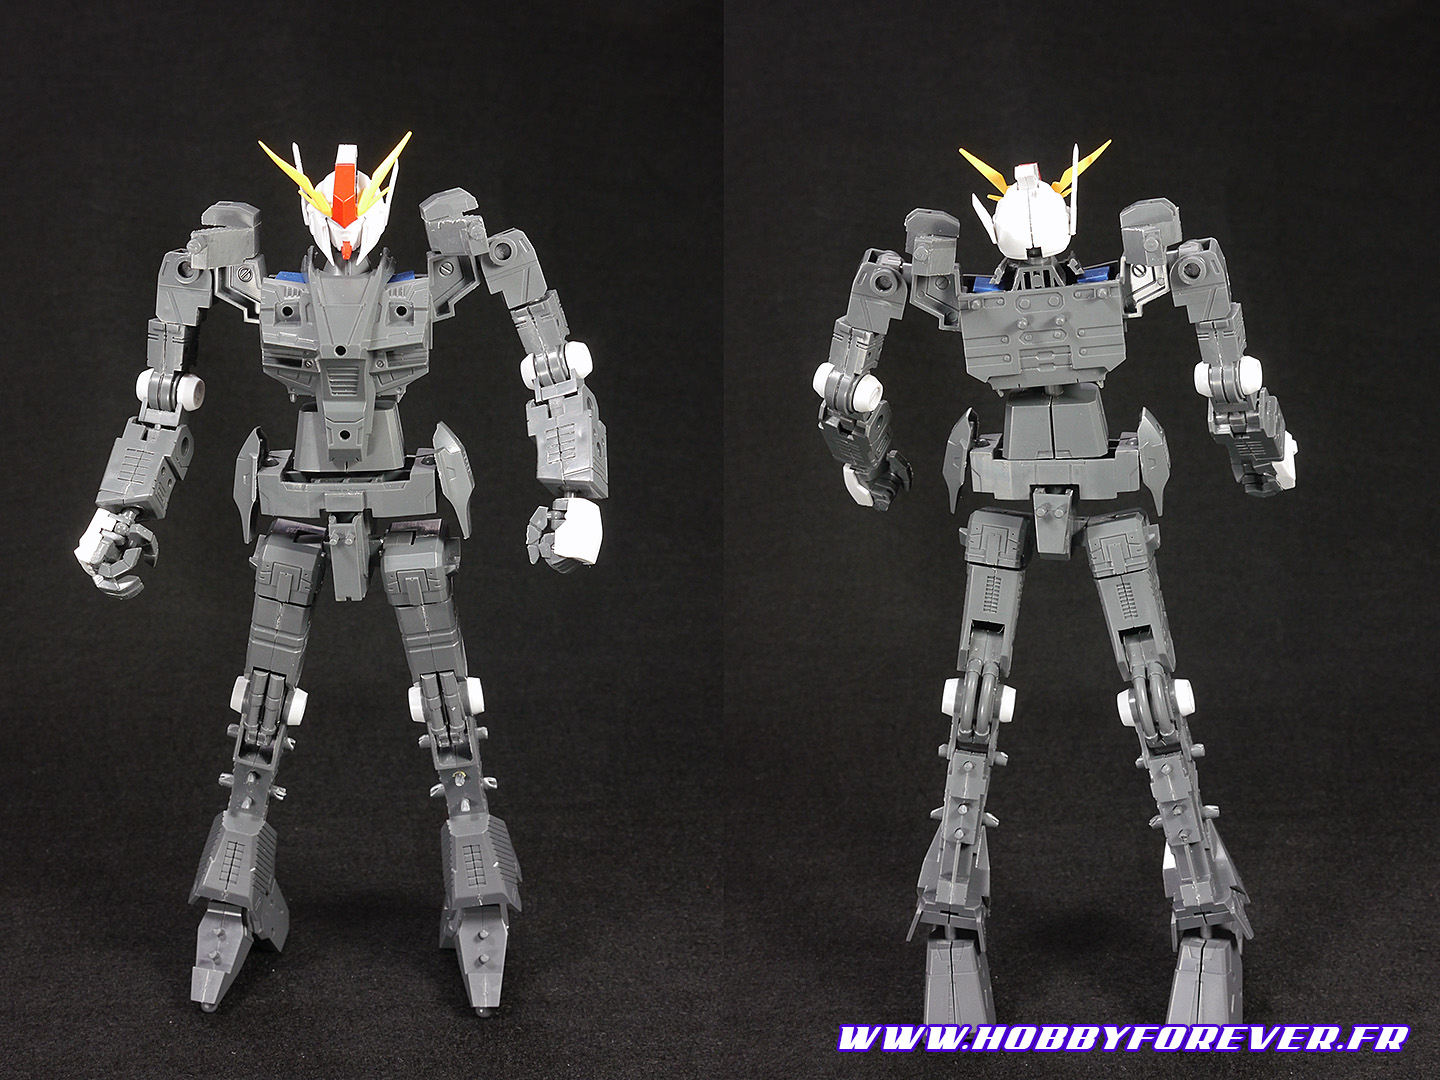 HG RX-105 Xi Gundoom - Review